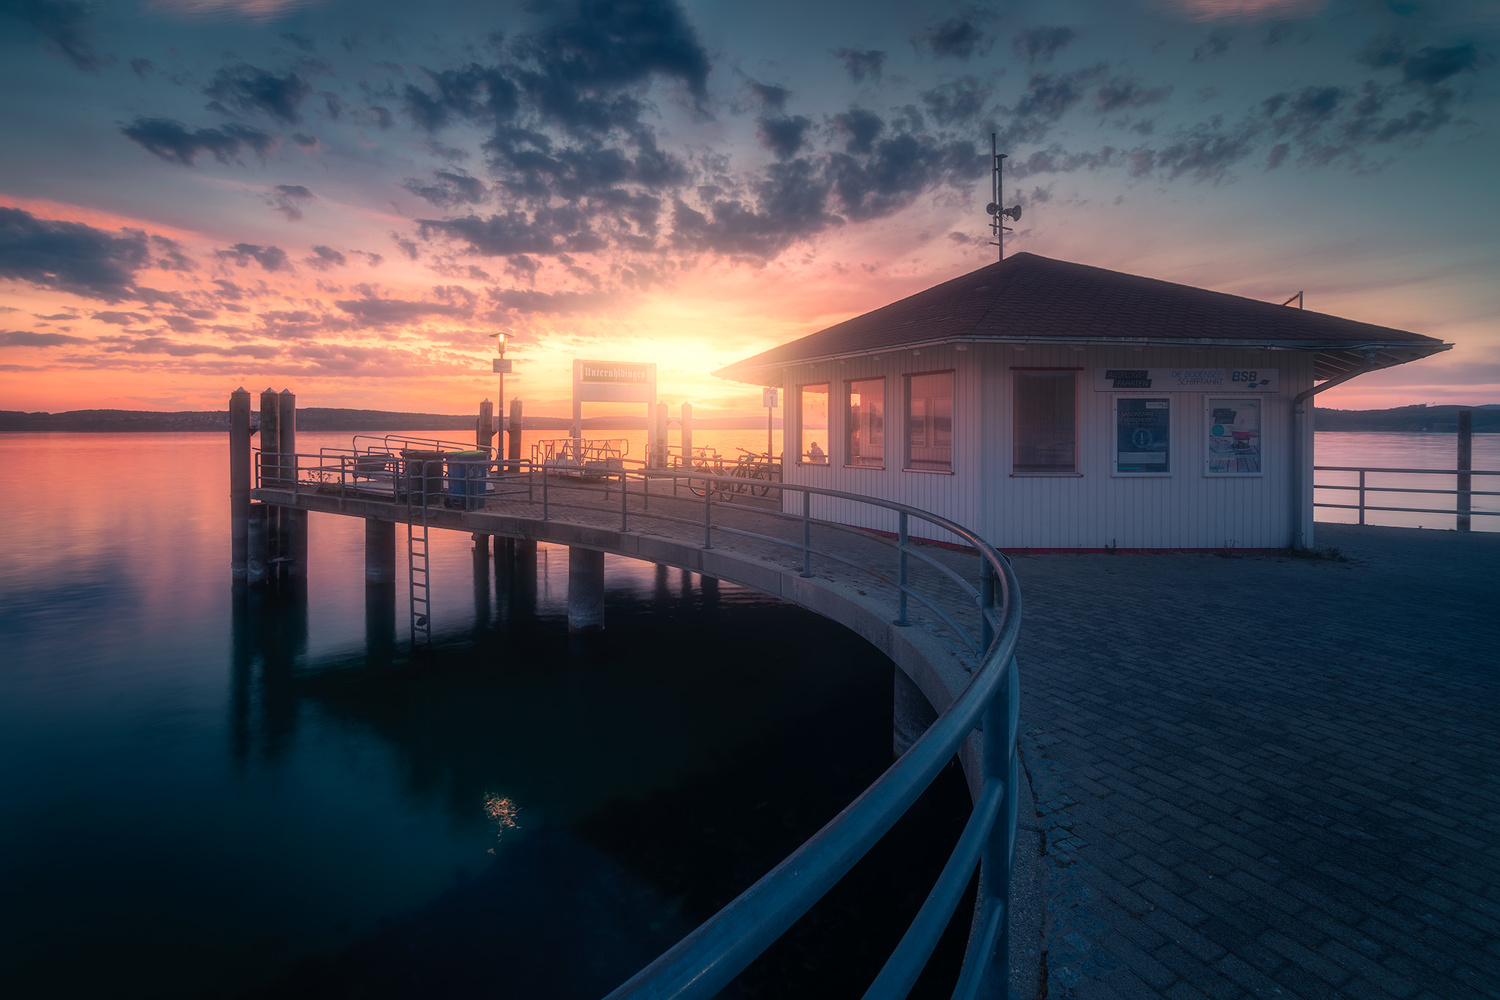 Sunset over Lake Constance by Christian Möhrle